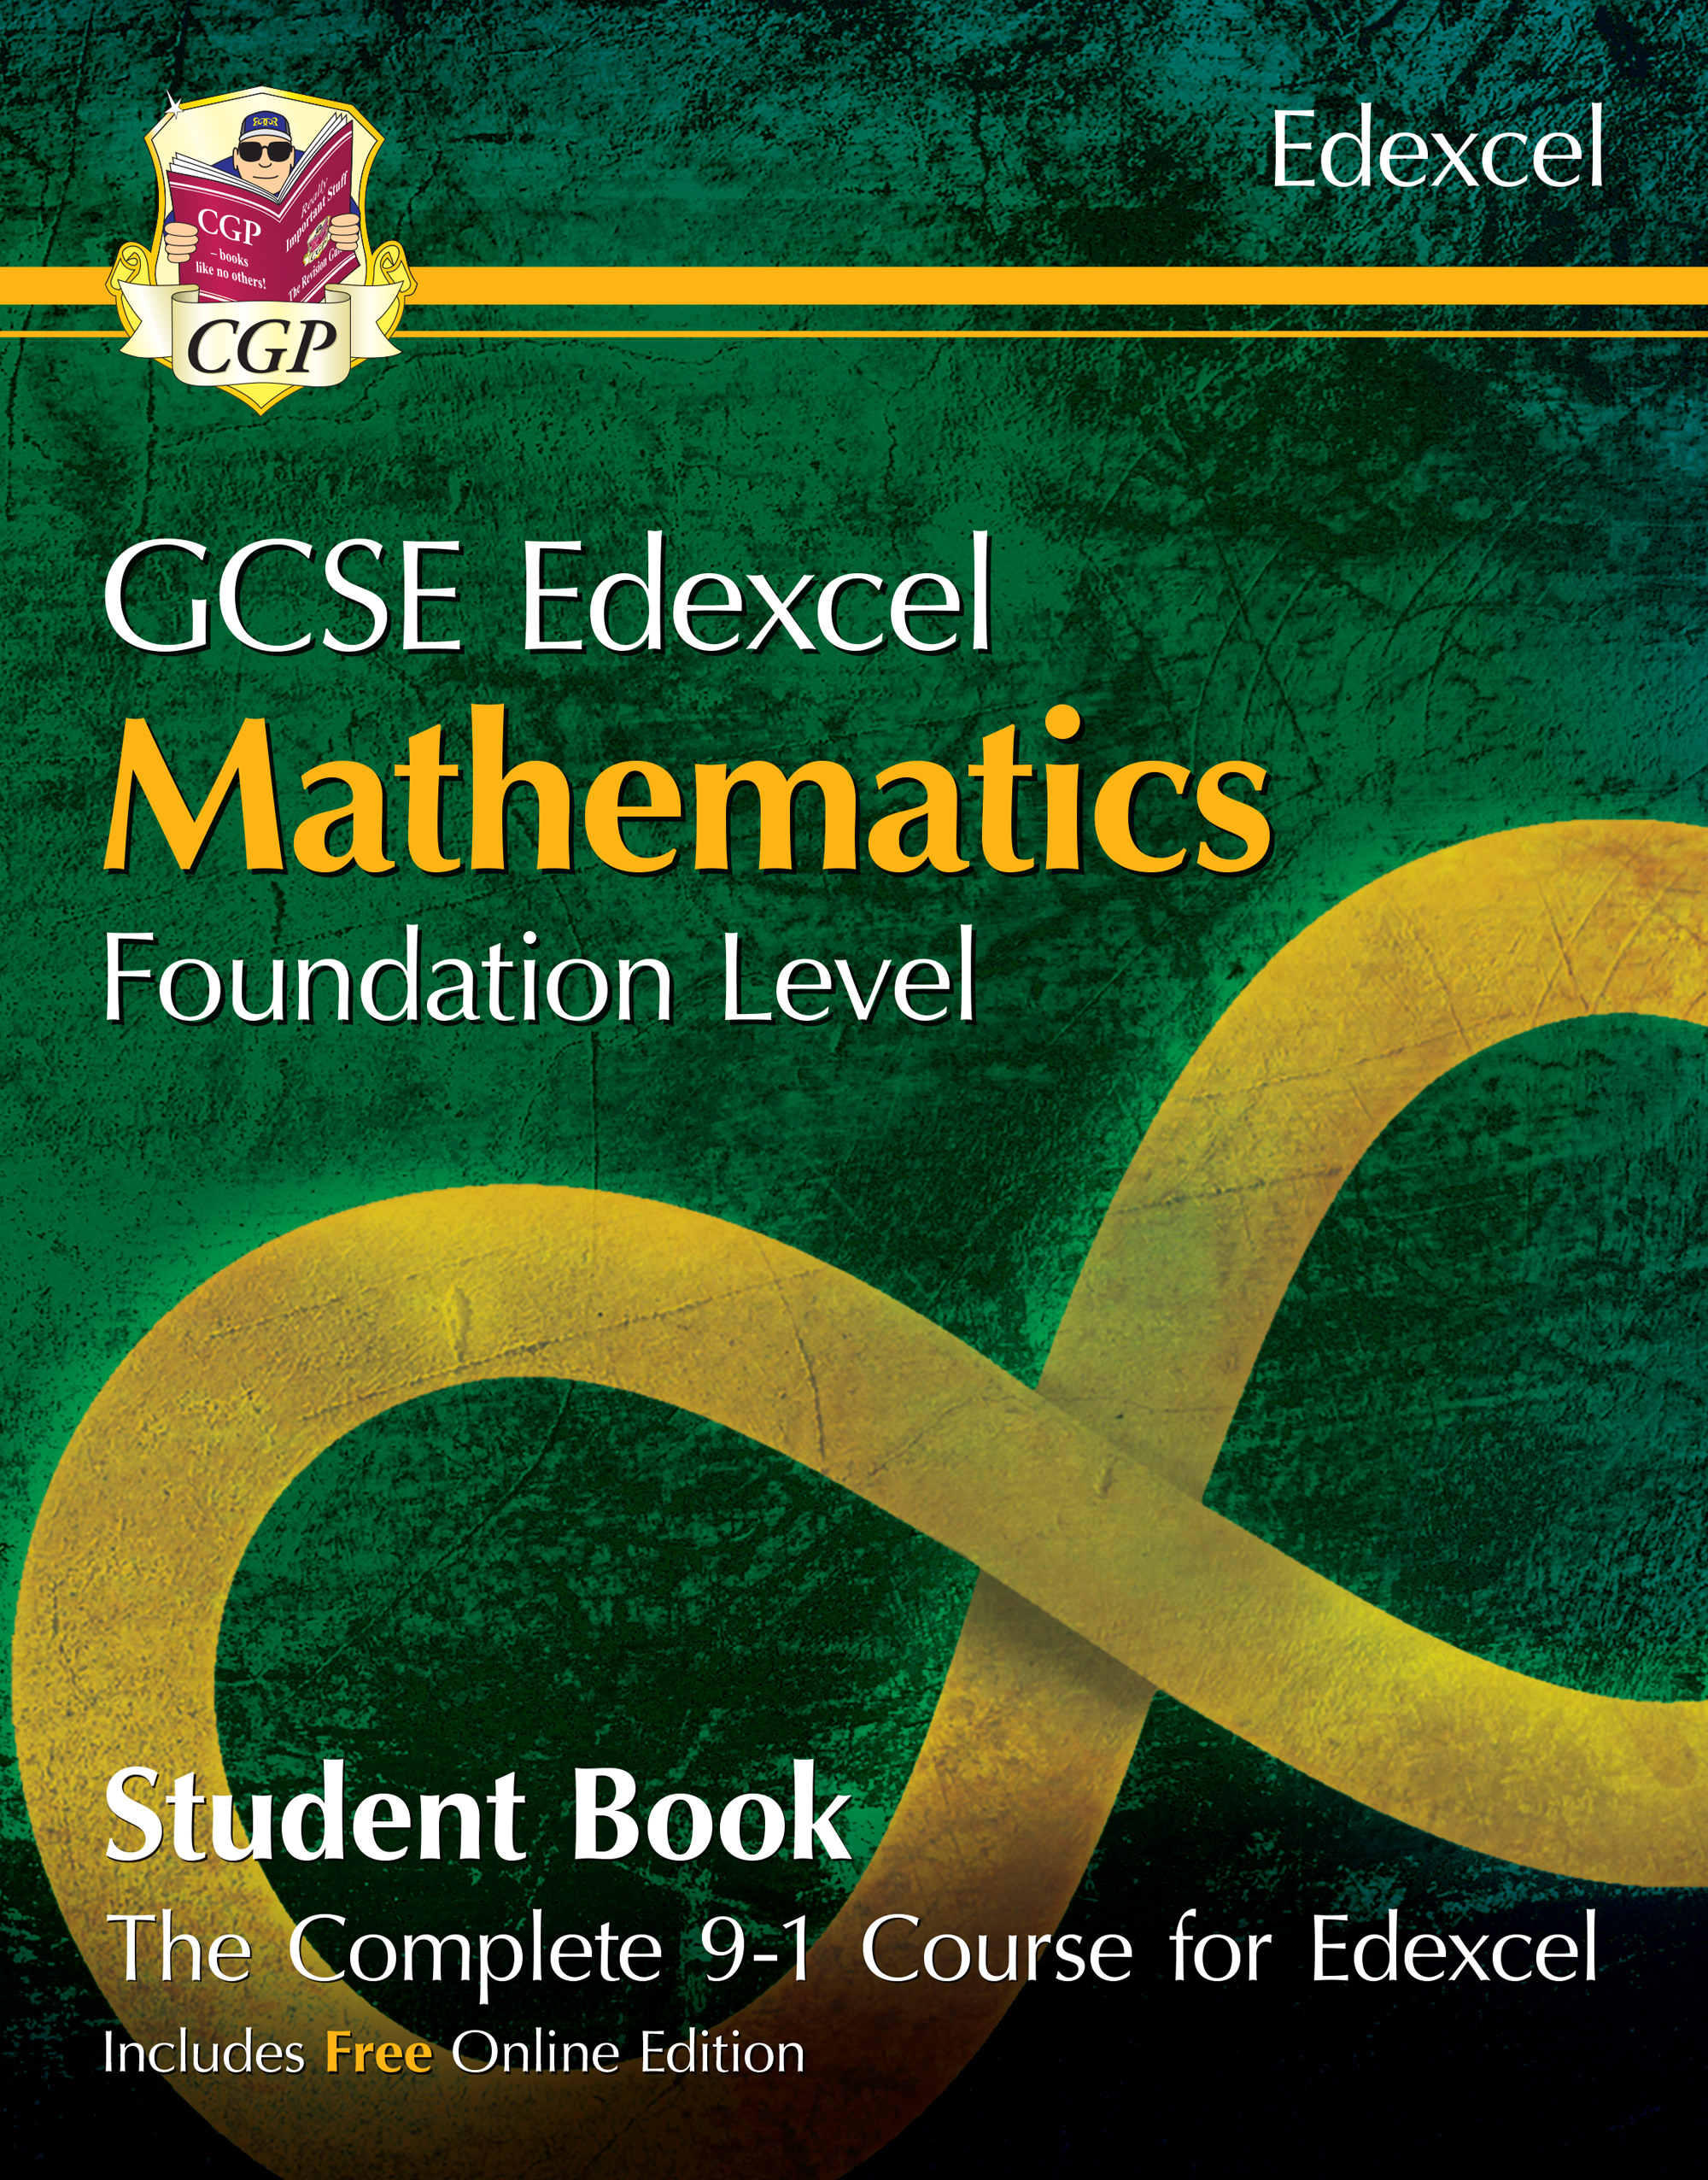 MXFT41 - Grade 9-1 GCSE Maths Edexcel Student Book - Foundation (with Online Edition)